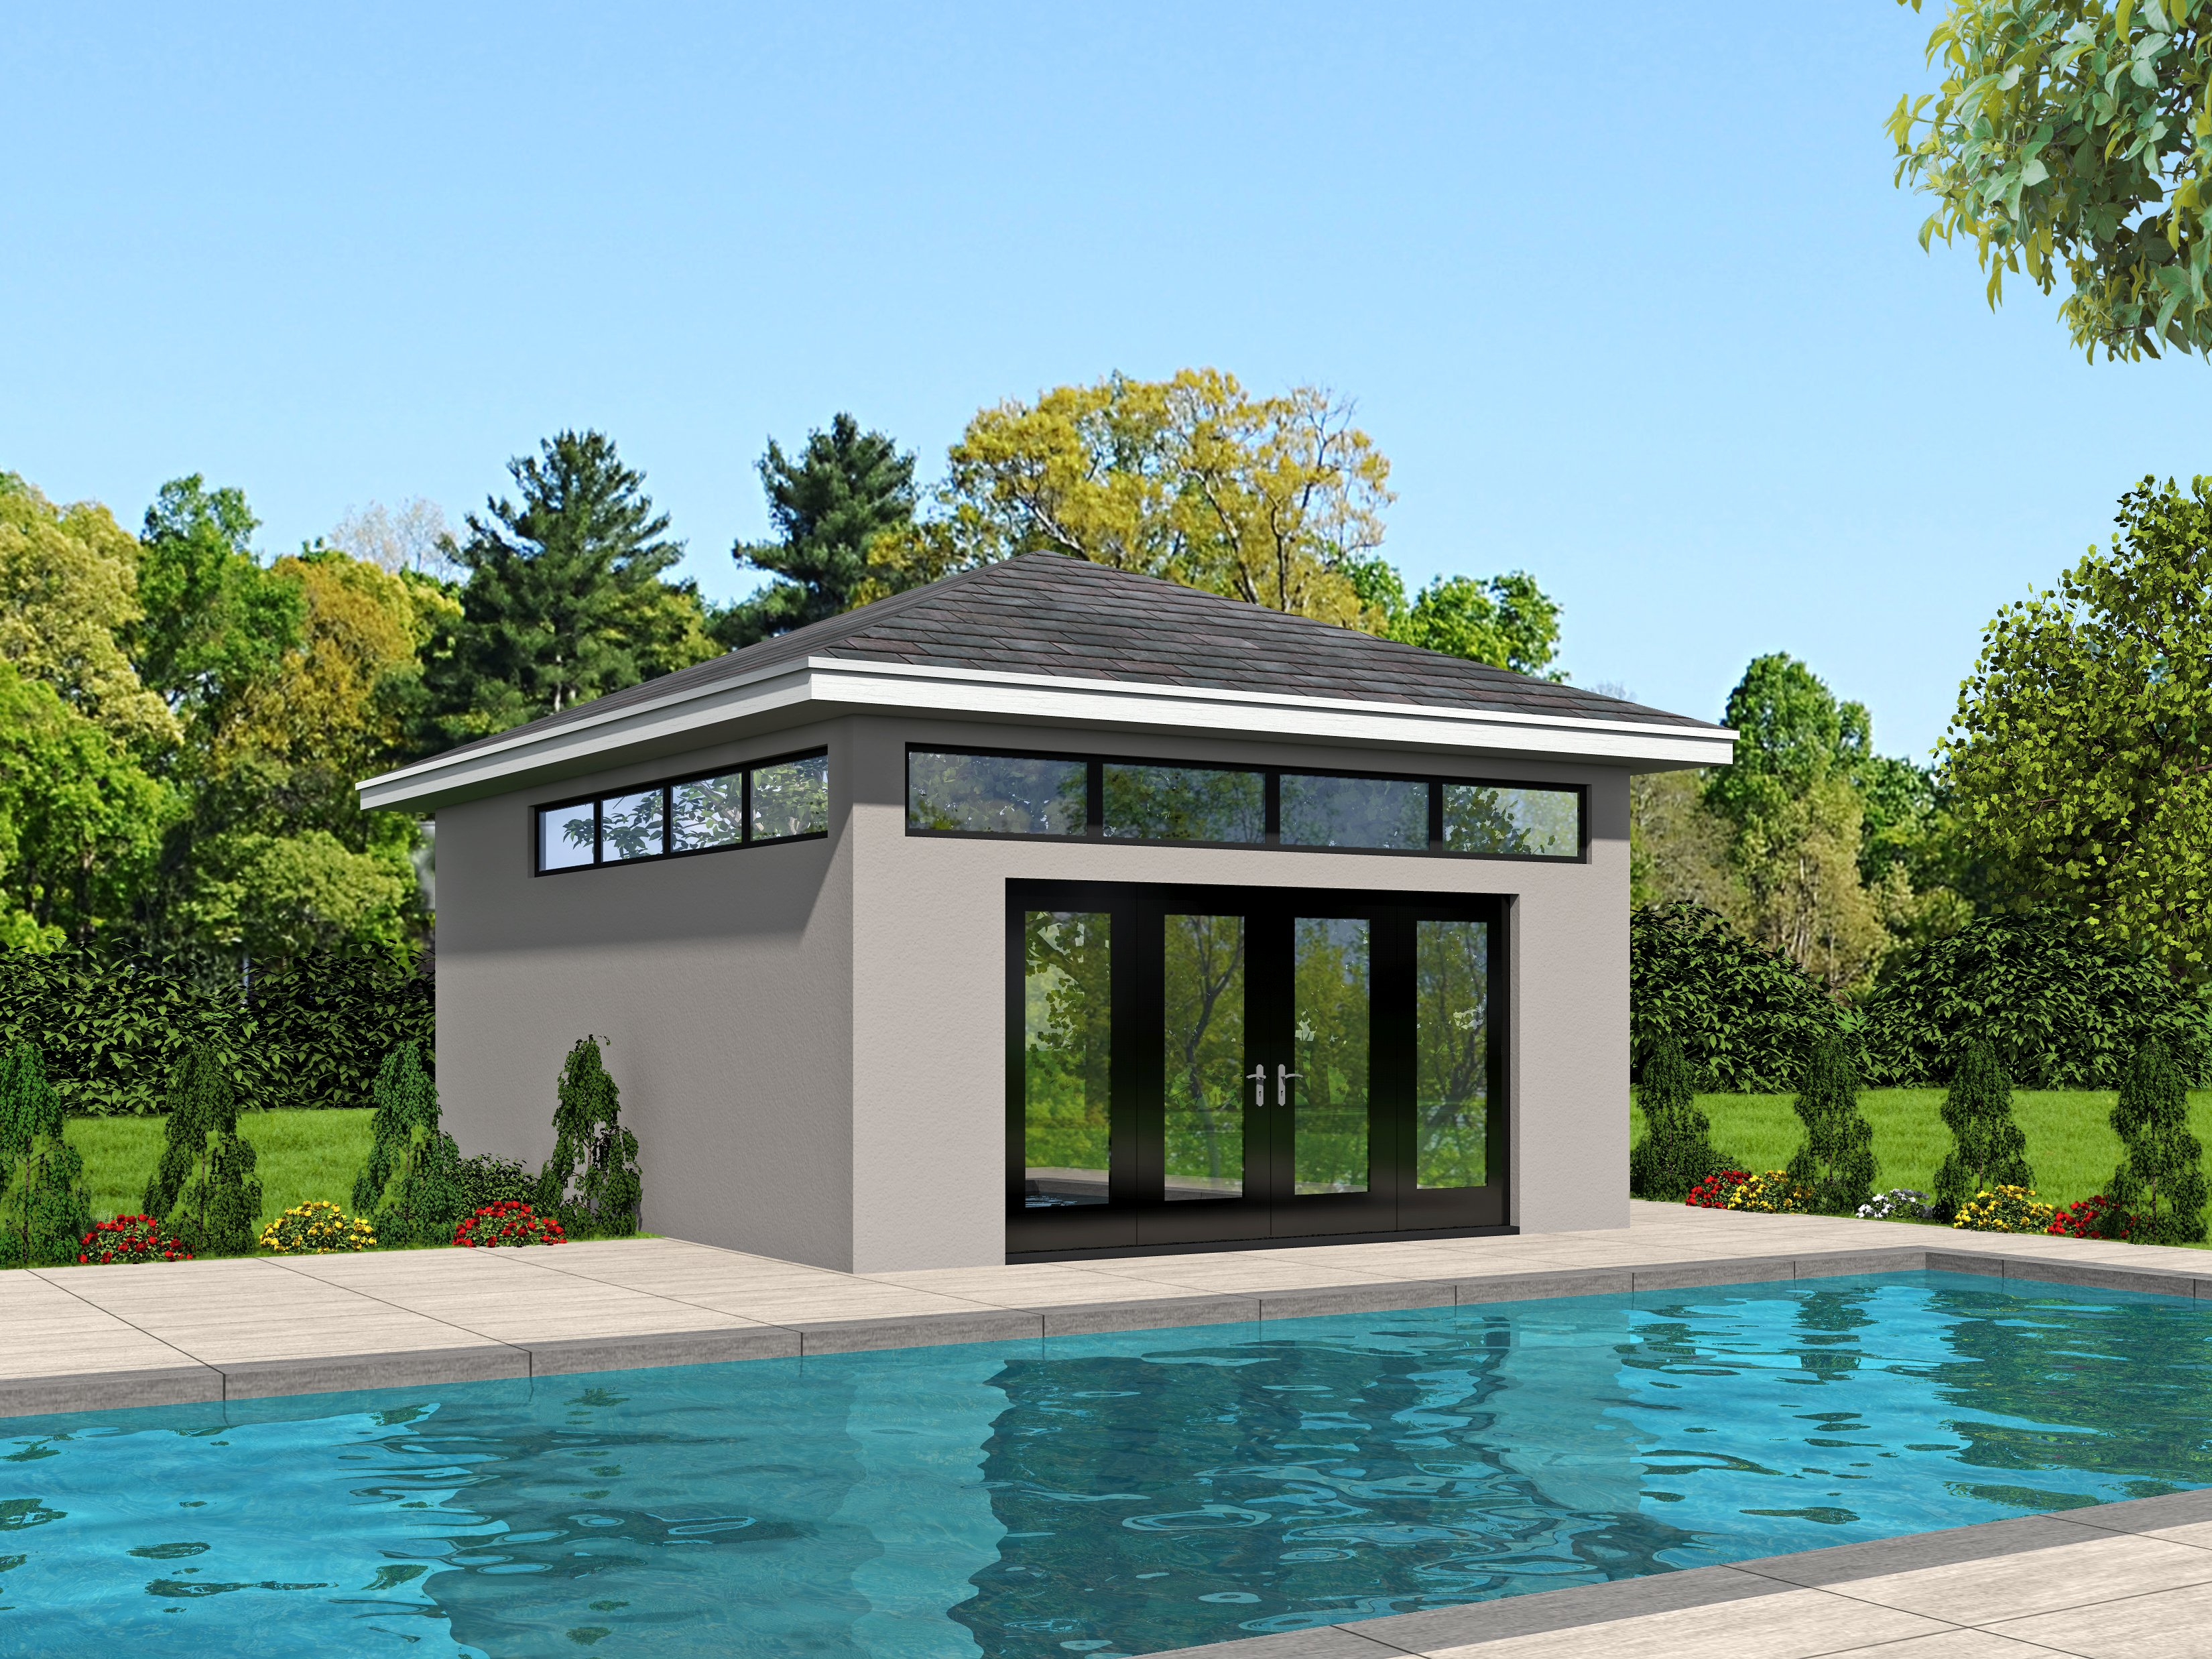 Pool house plans house plans plus for House plans with swimming pools